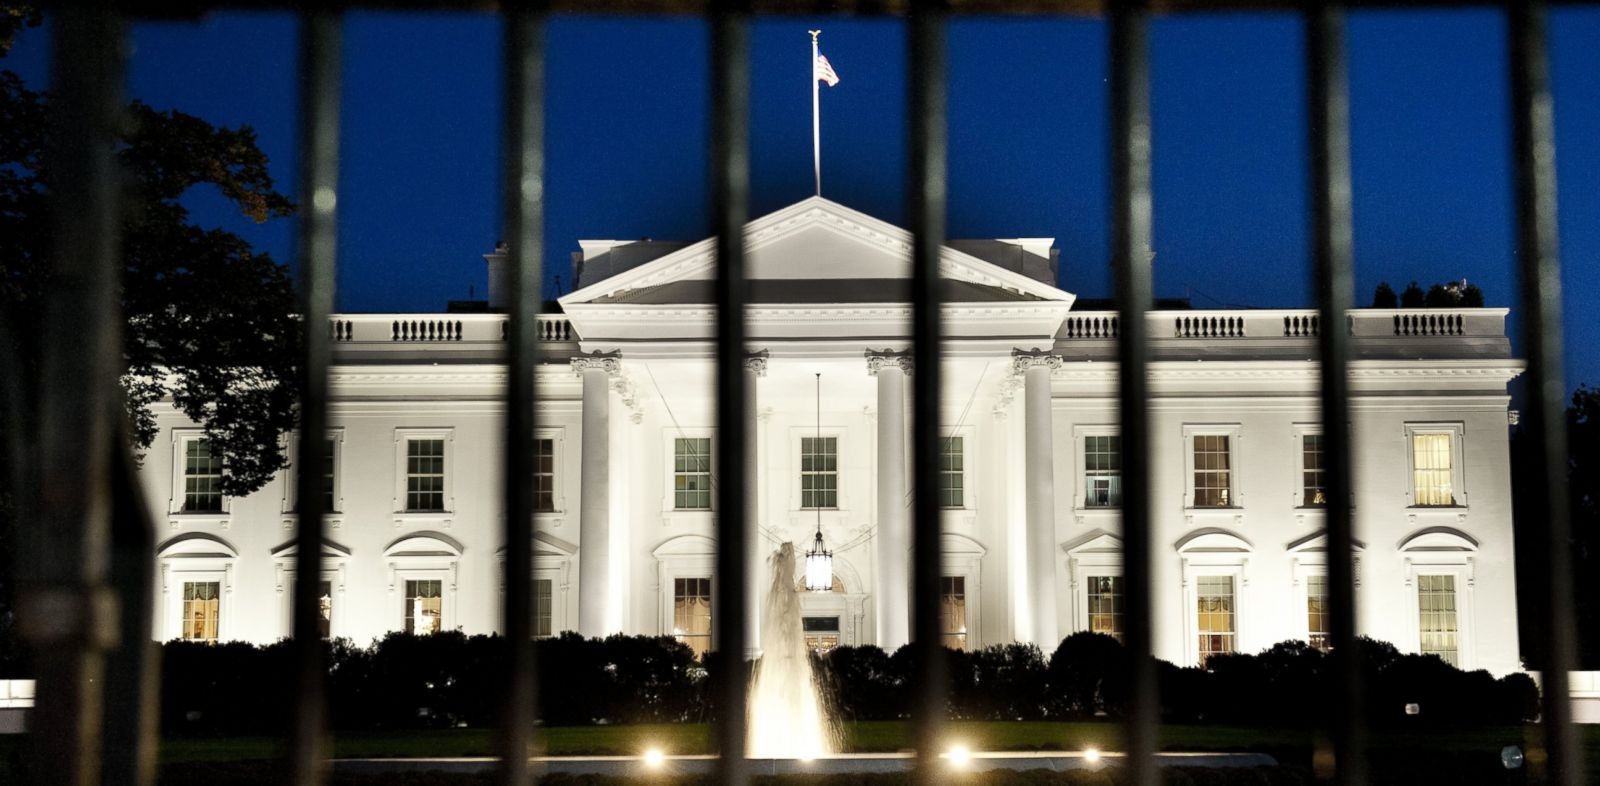 PHOTO: The White House is seen at dusk